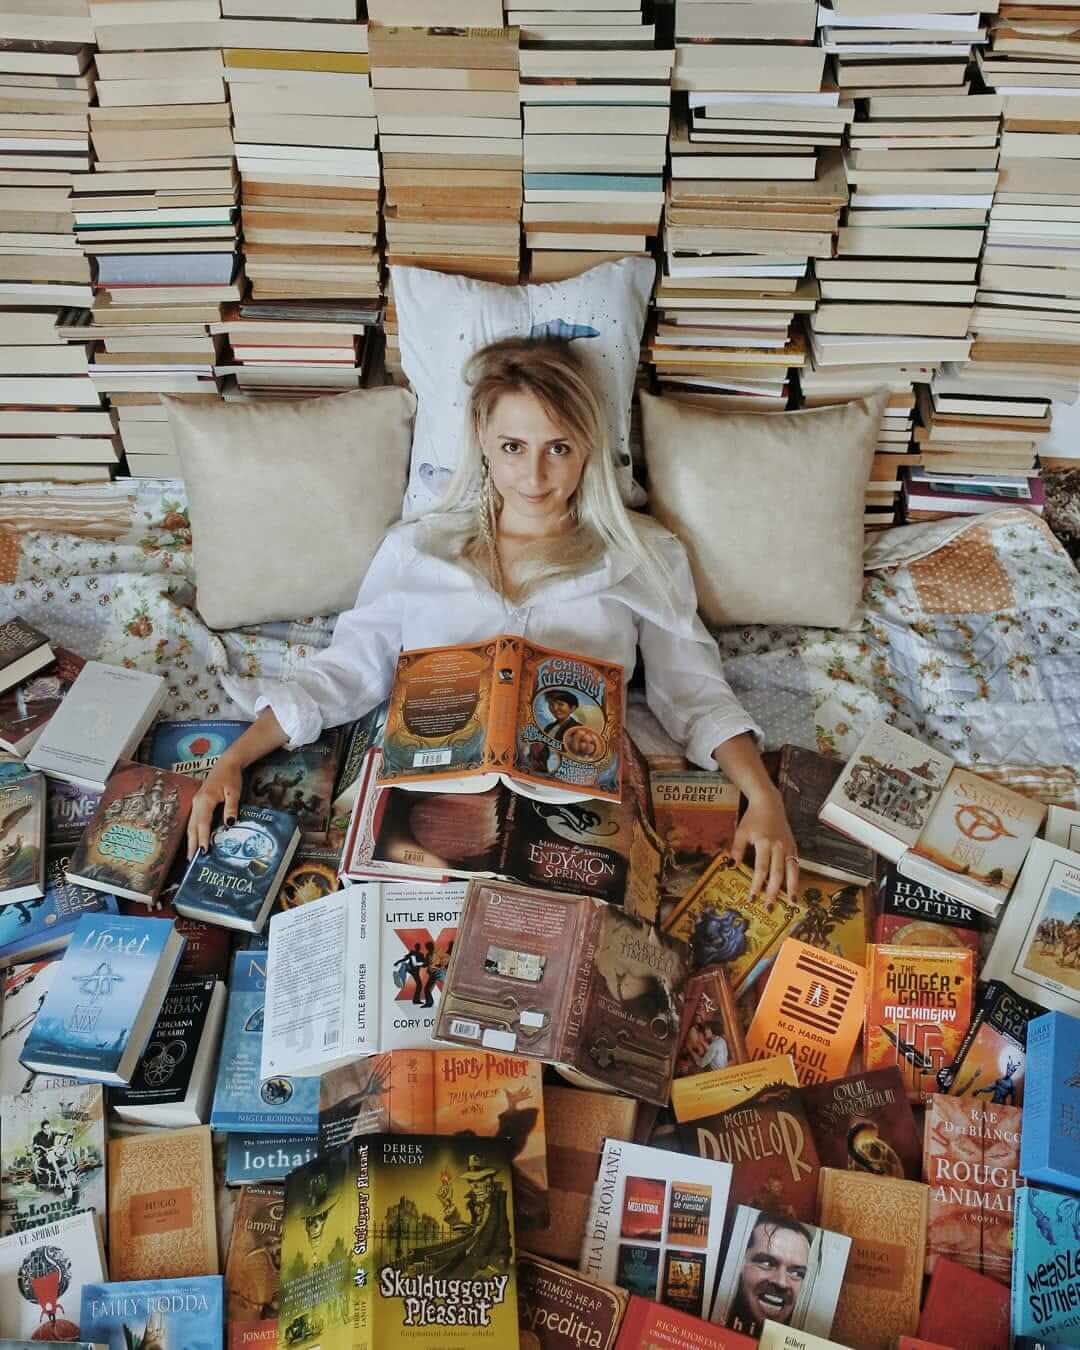 The Girl Who Poses With Books: An Epic Photo Journey - PopMalt